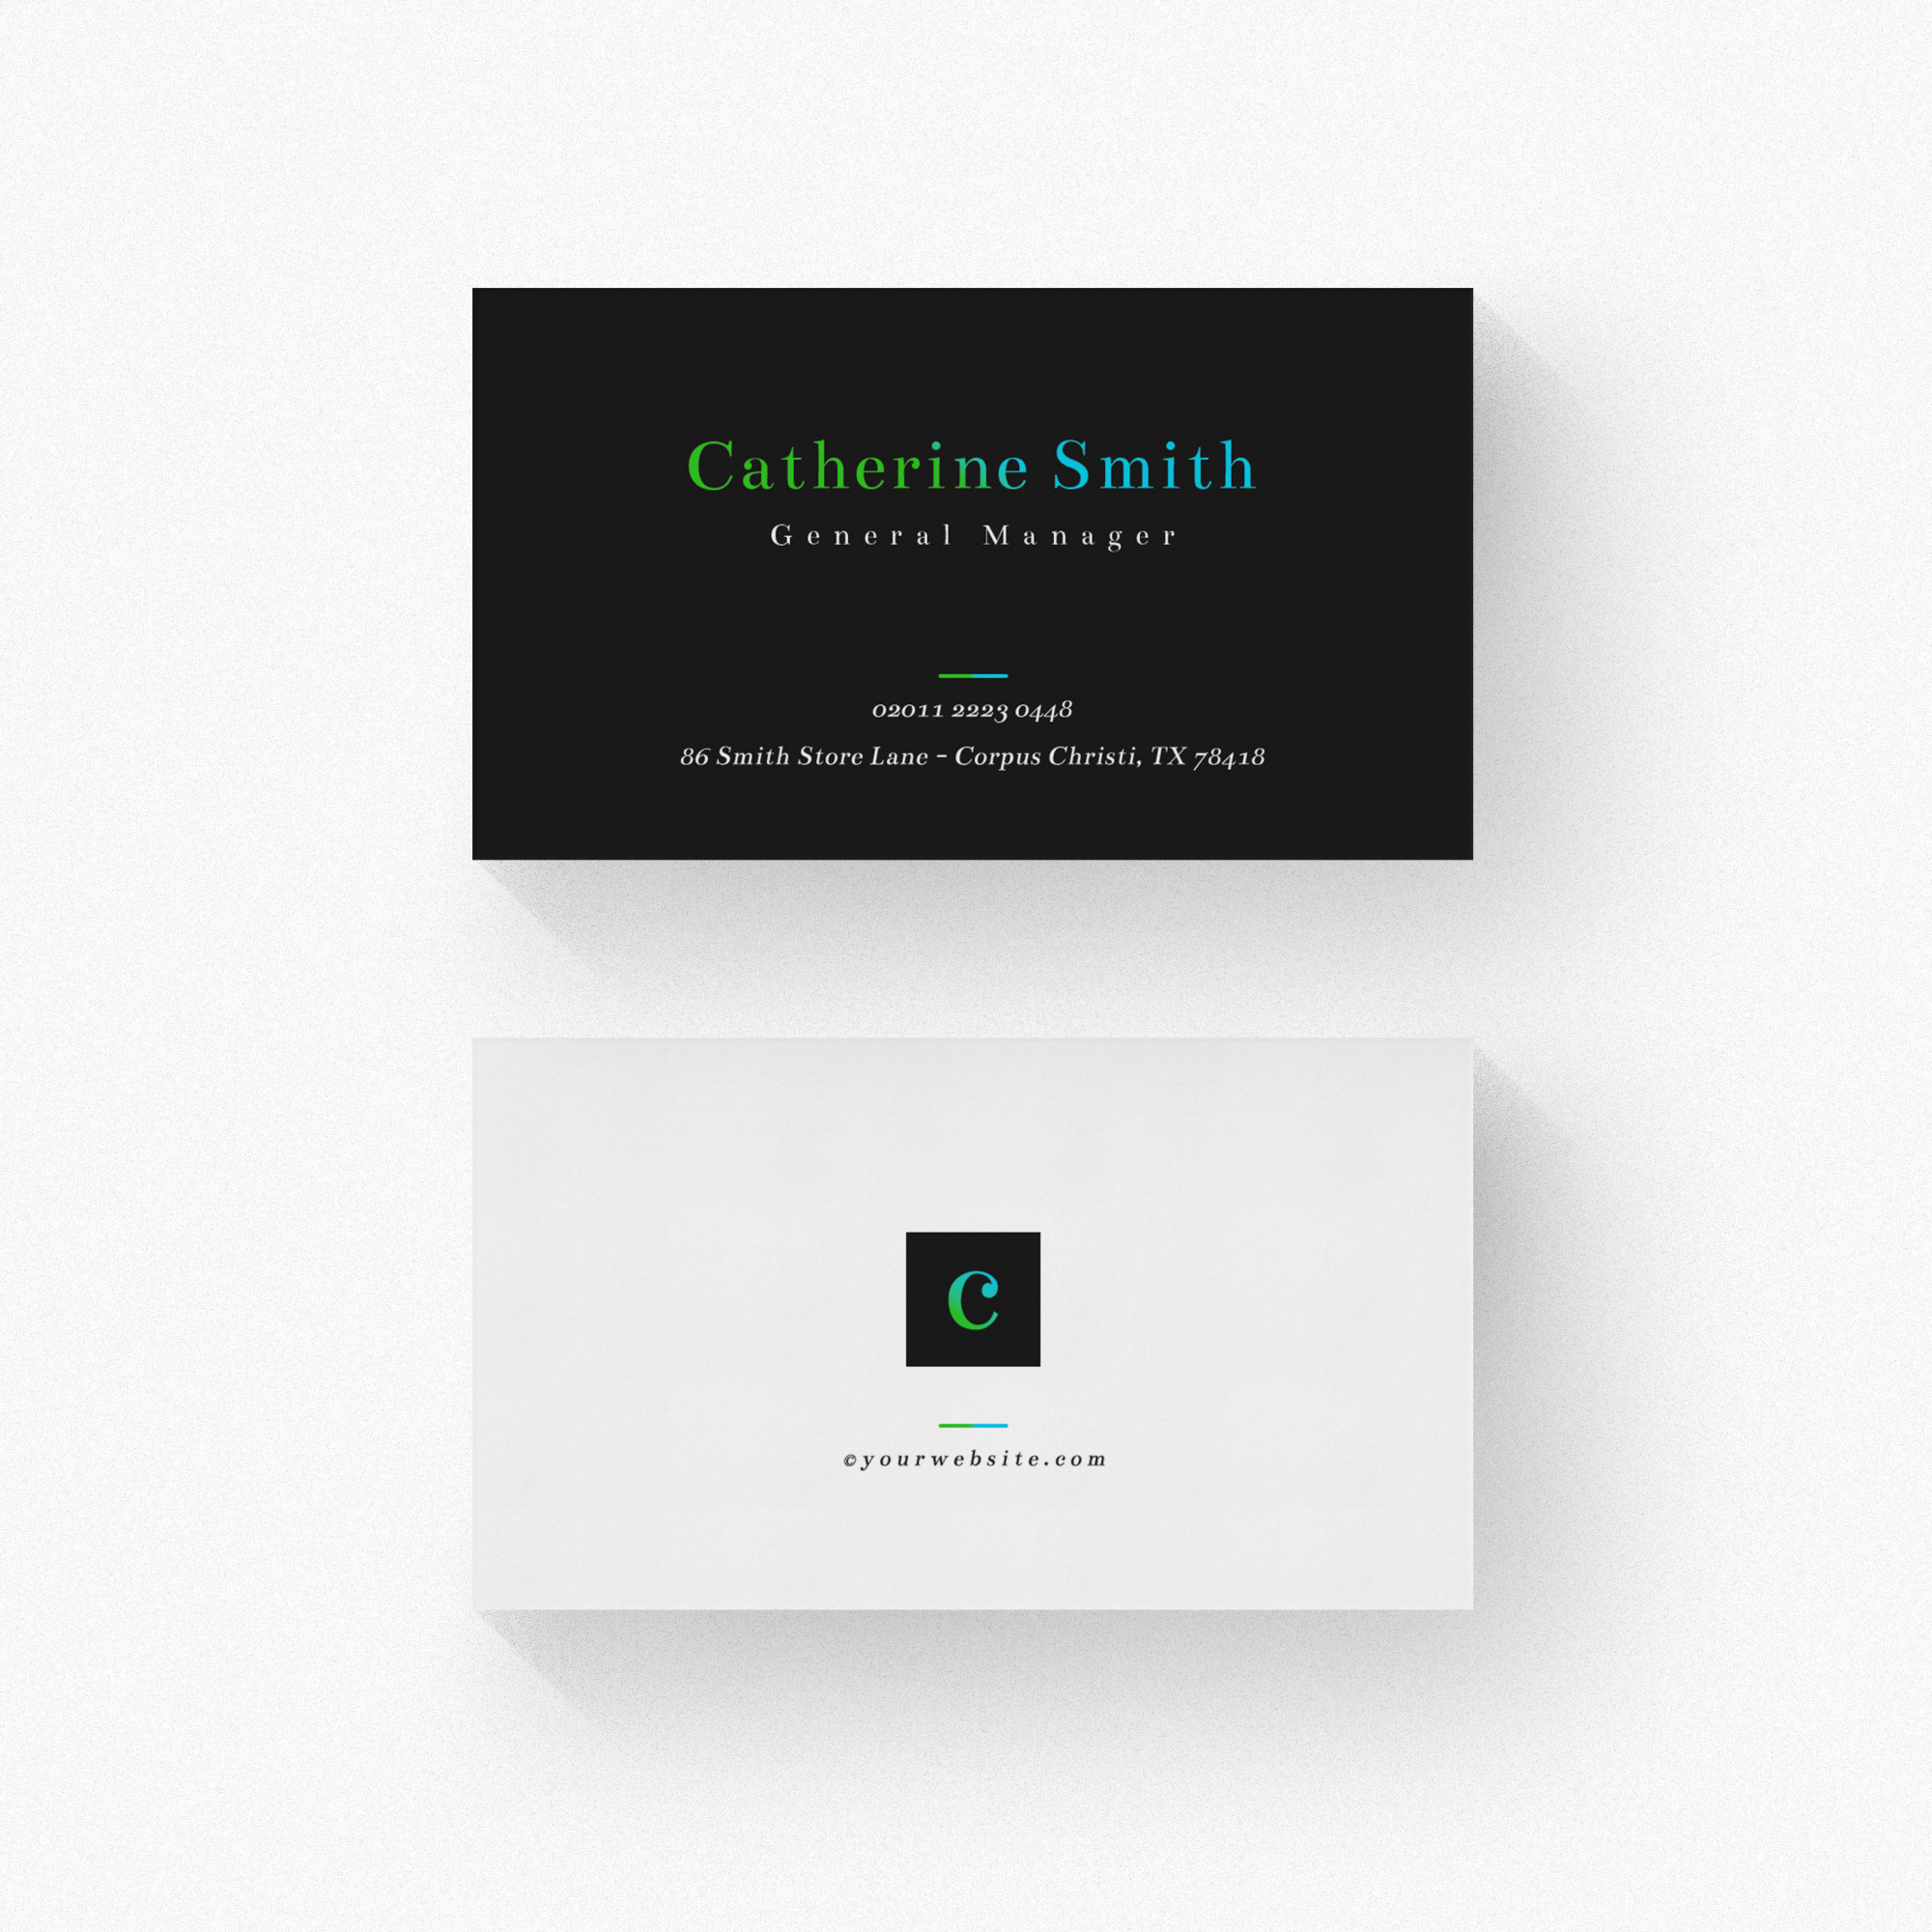 Minimal business card with black details